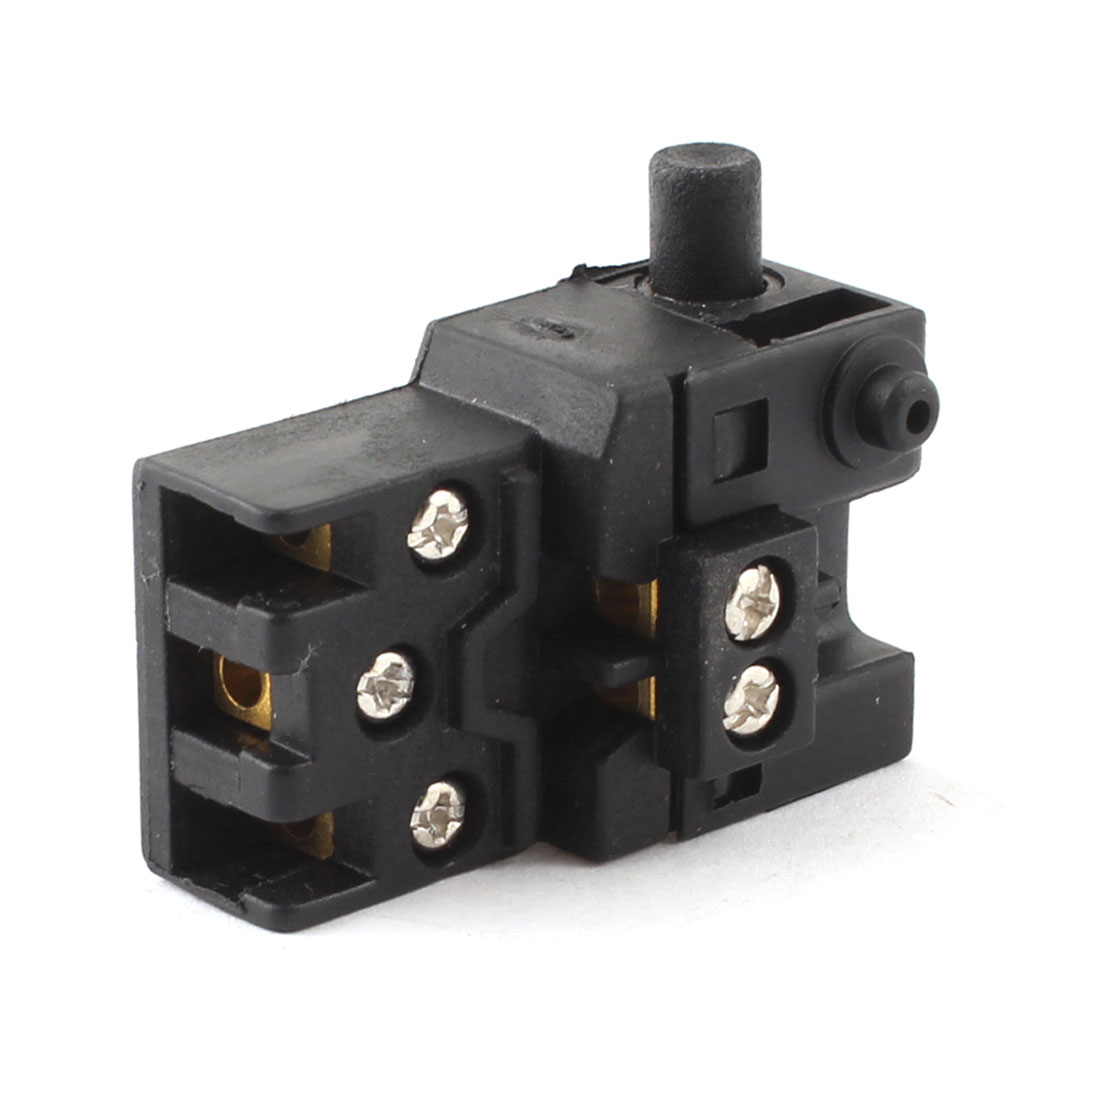 Momentary Type SPDT 5 Terminal Electric Tool Switch for Cutting Machine